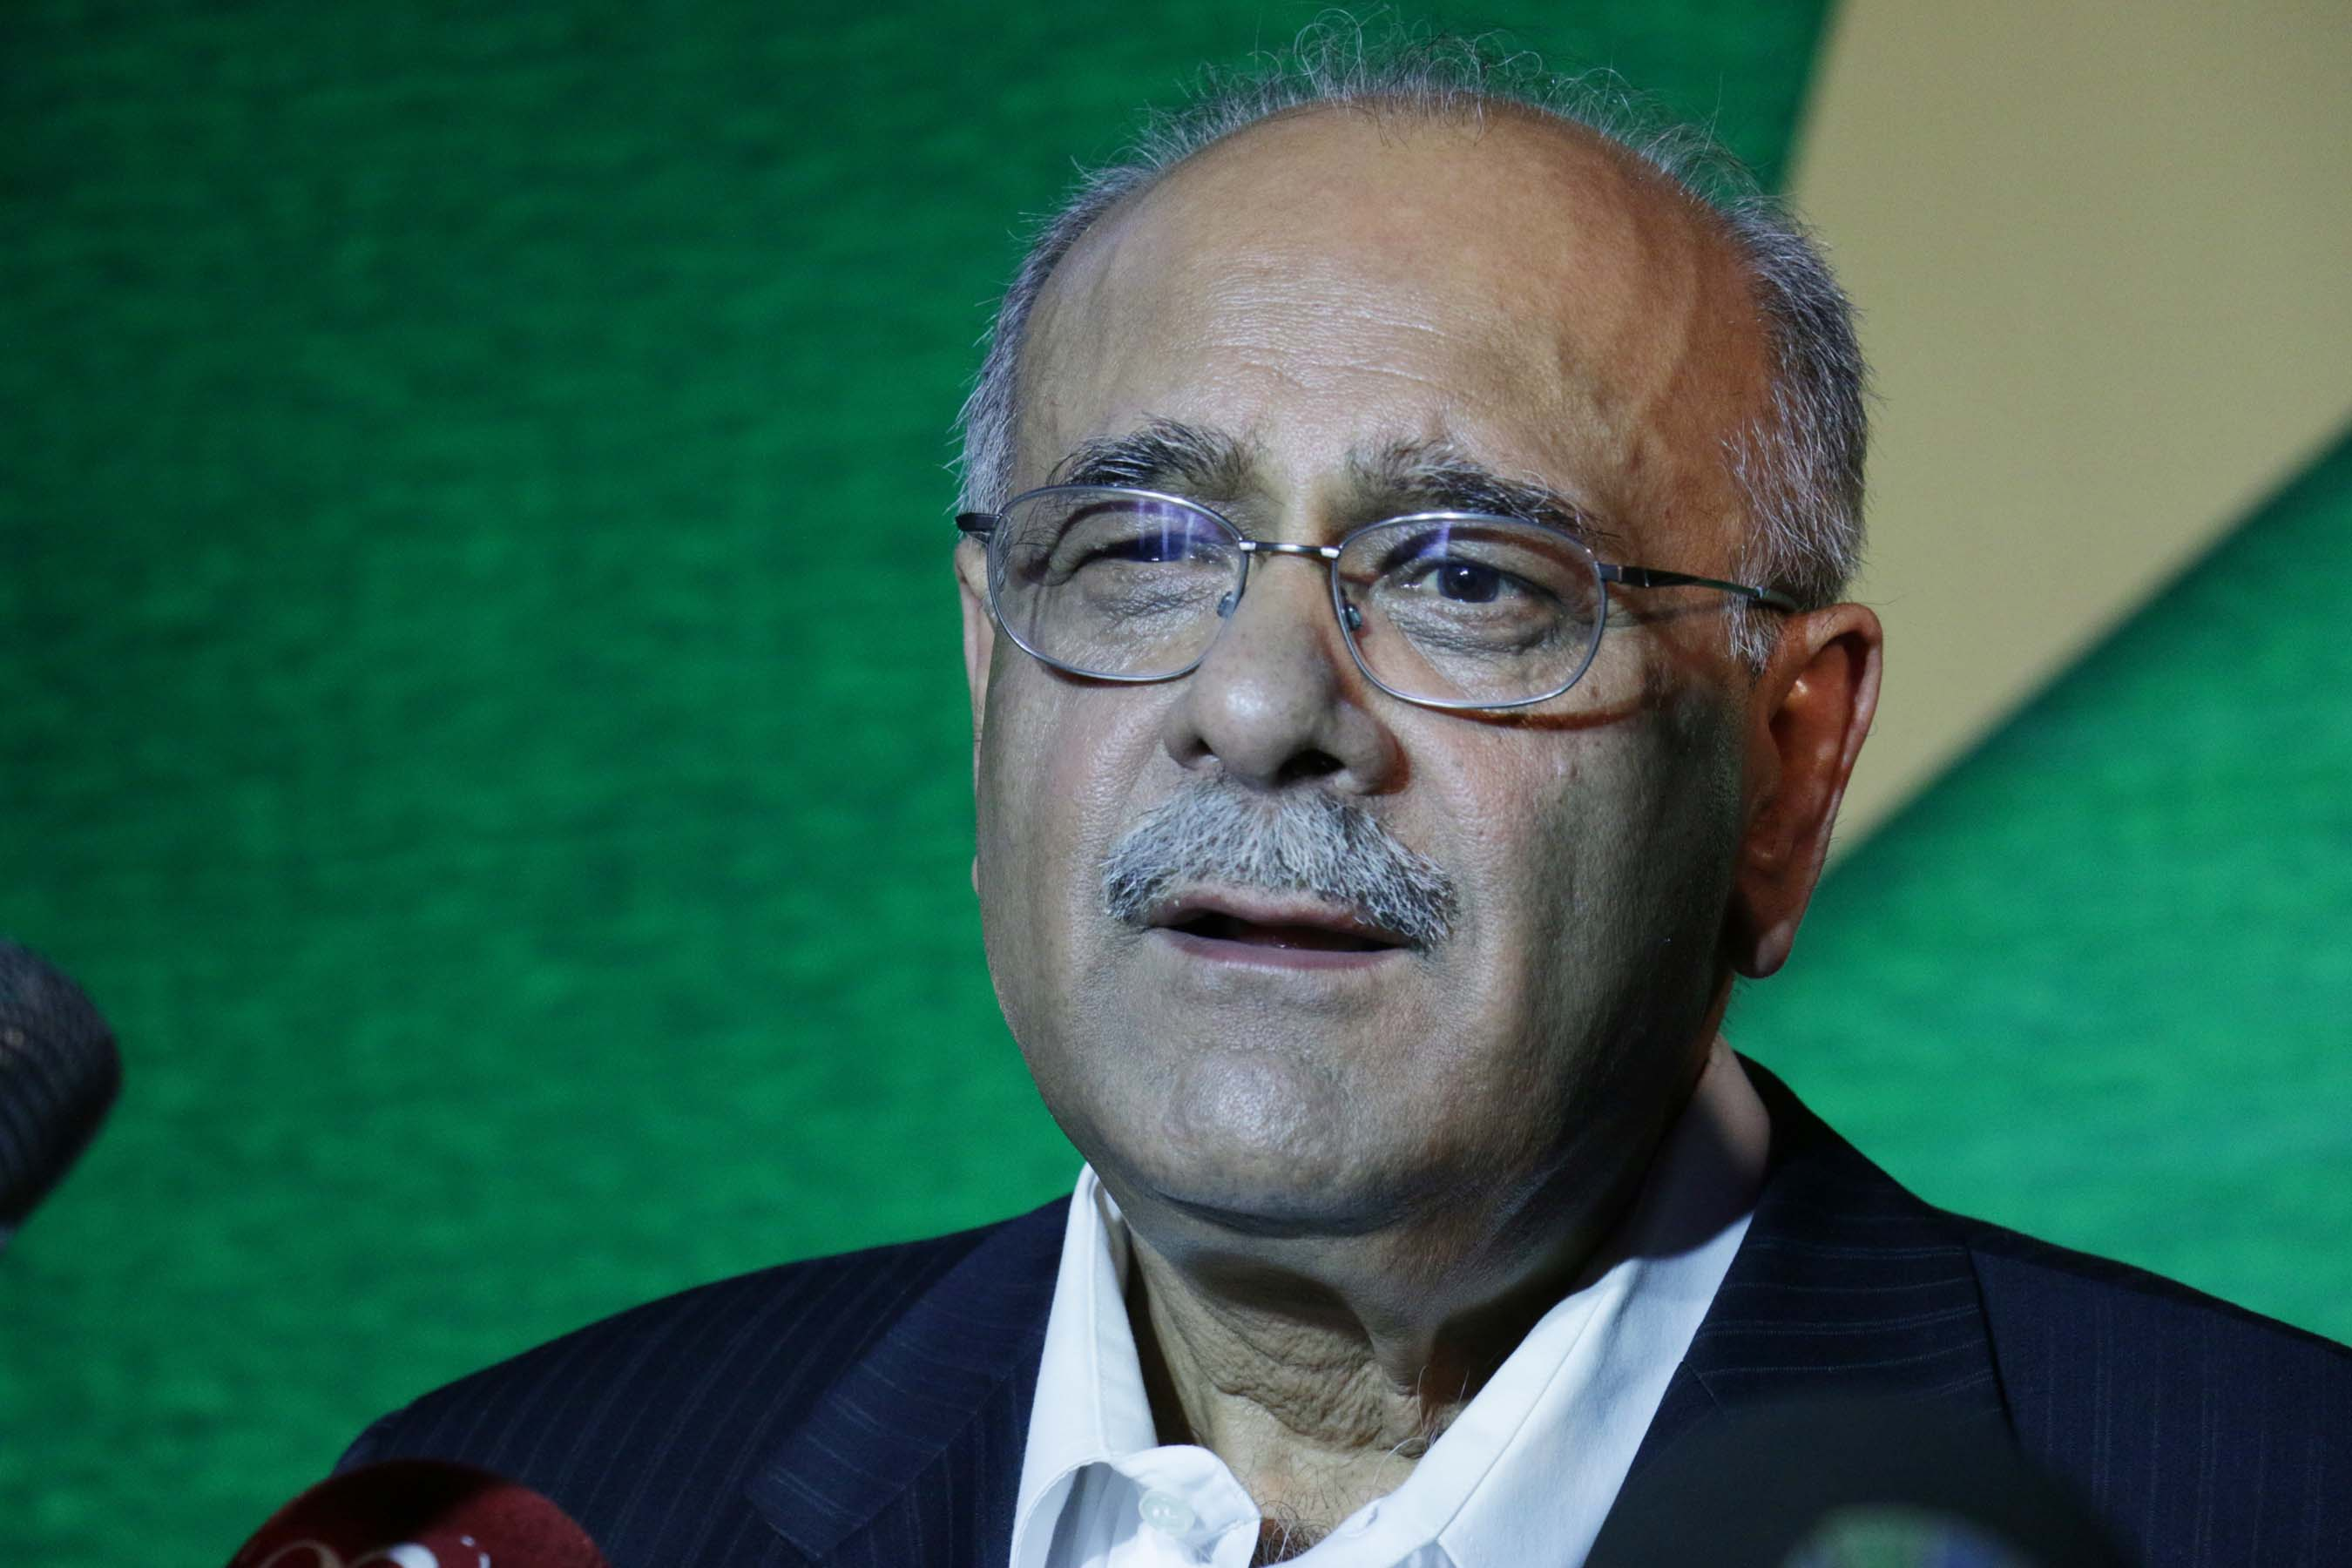 pcb plans to approach the private sector for money says sethi